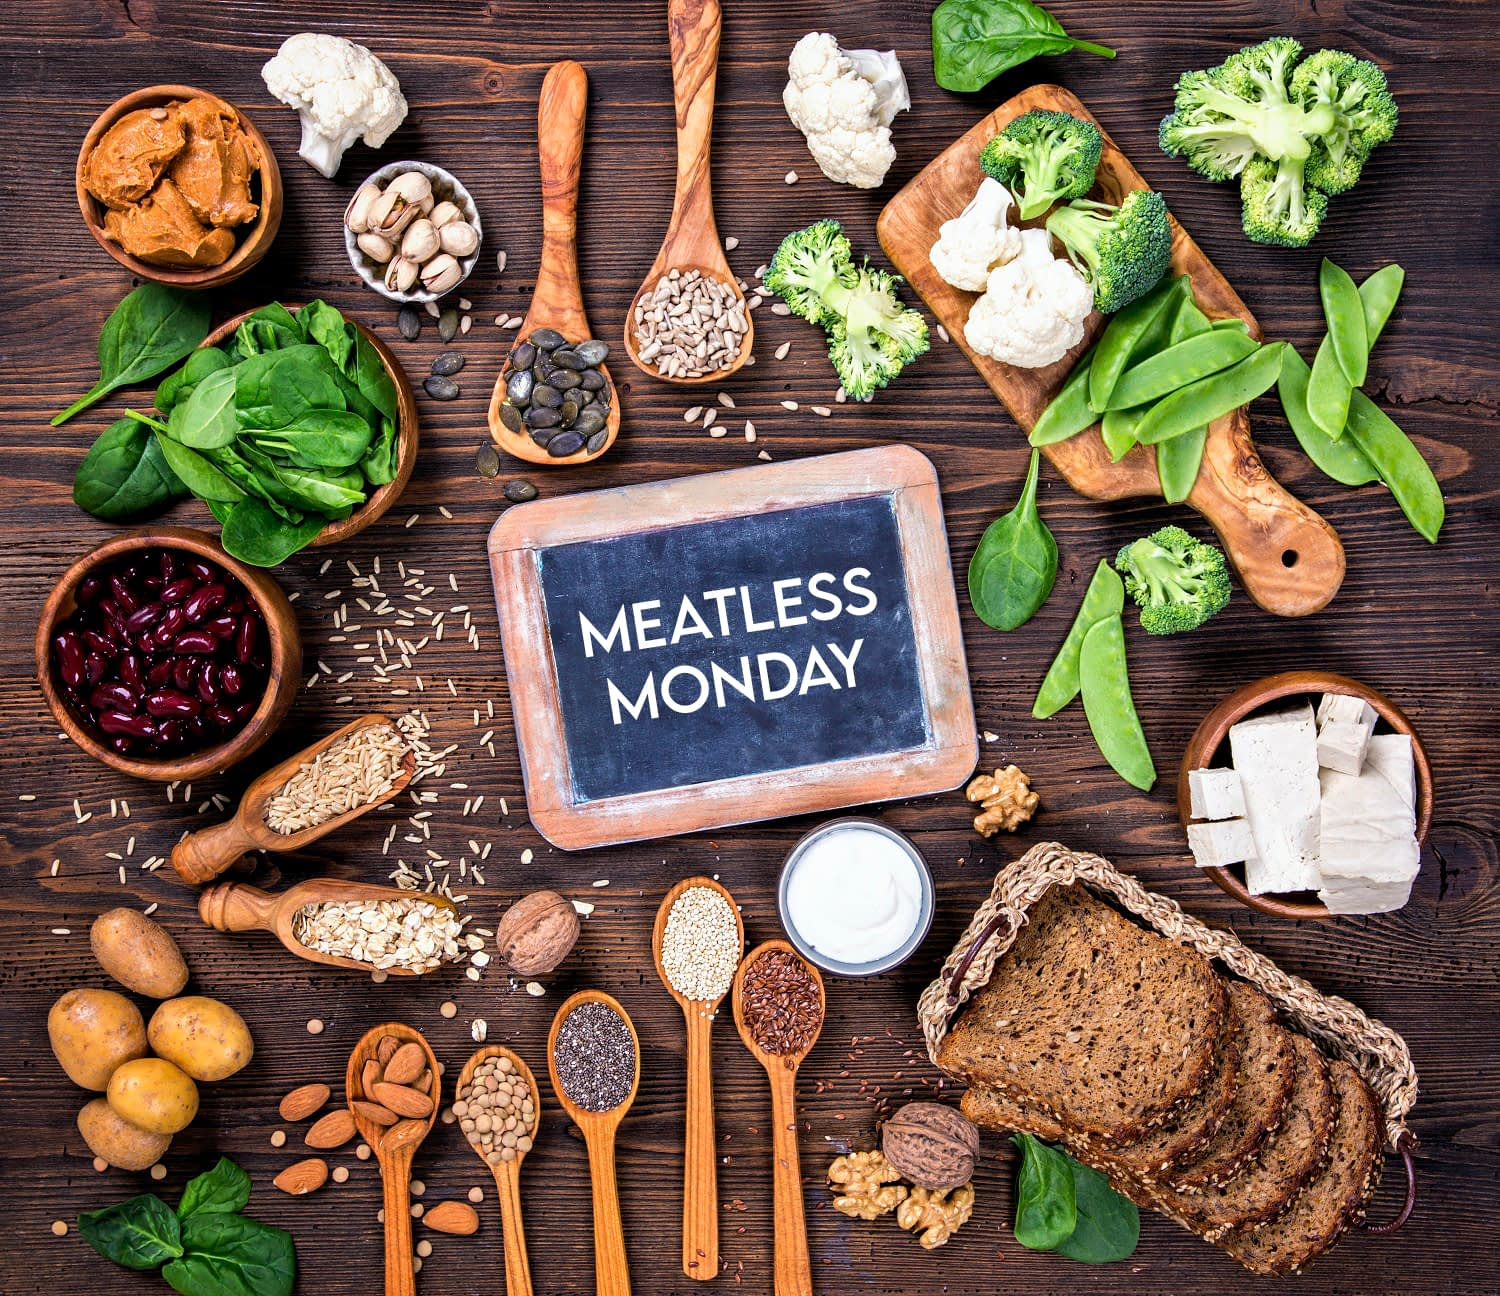 Meatless Monday foods